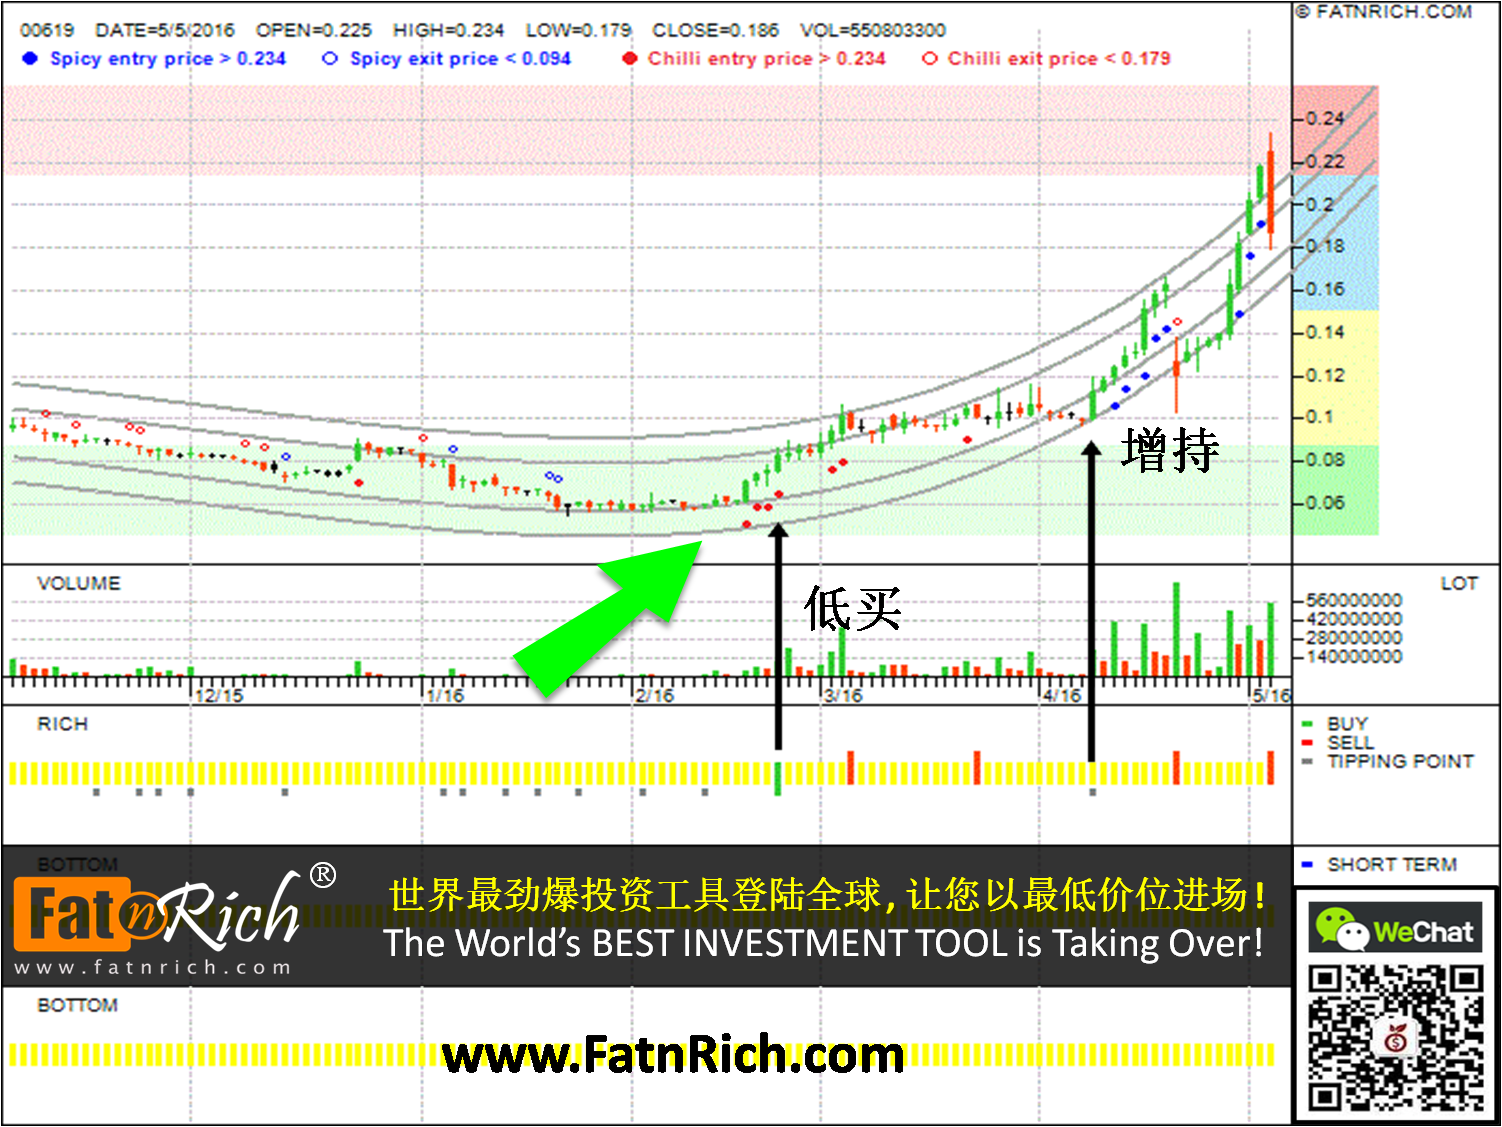 香港股票南華金融 South China Financial Holdings Limited 00619